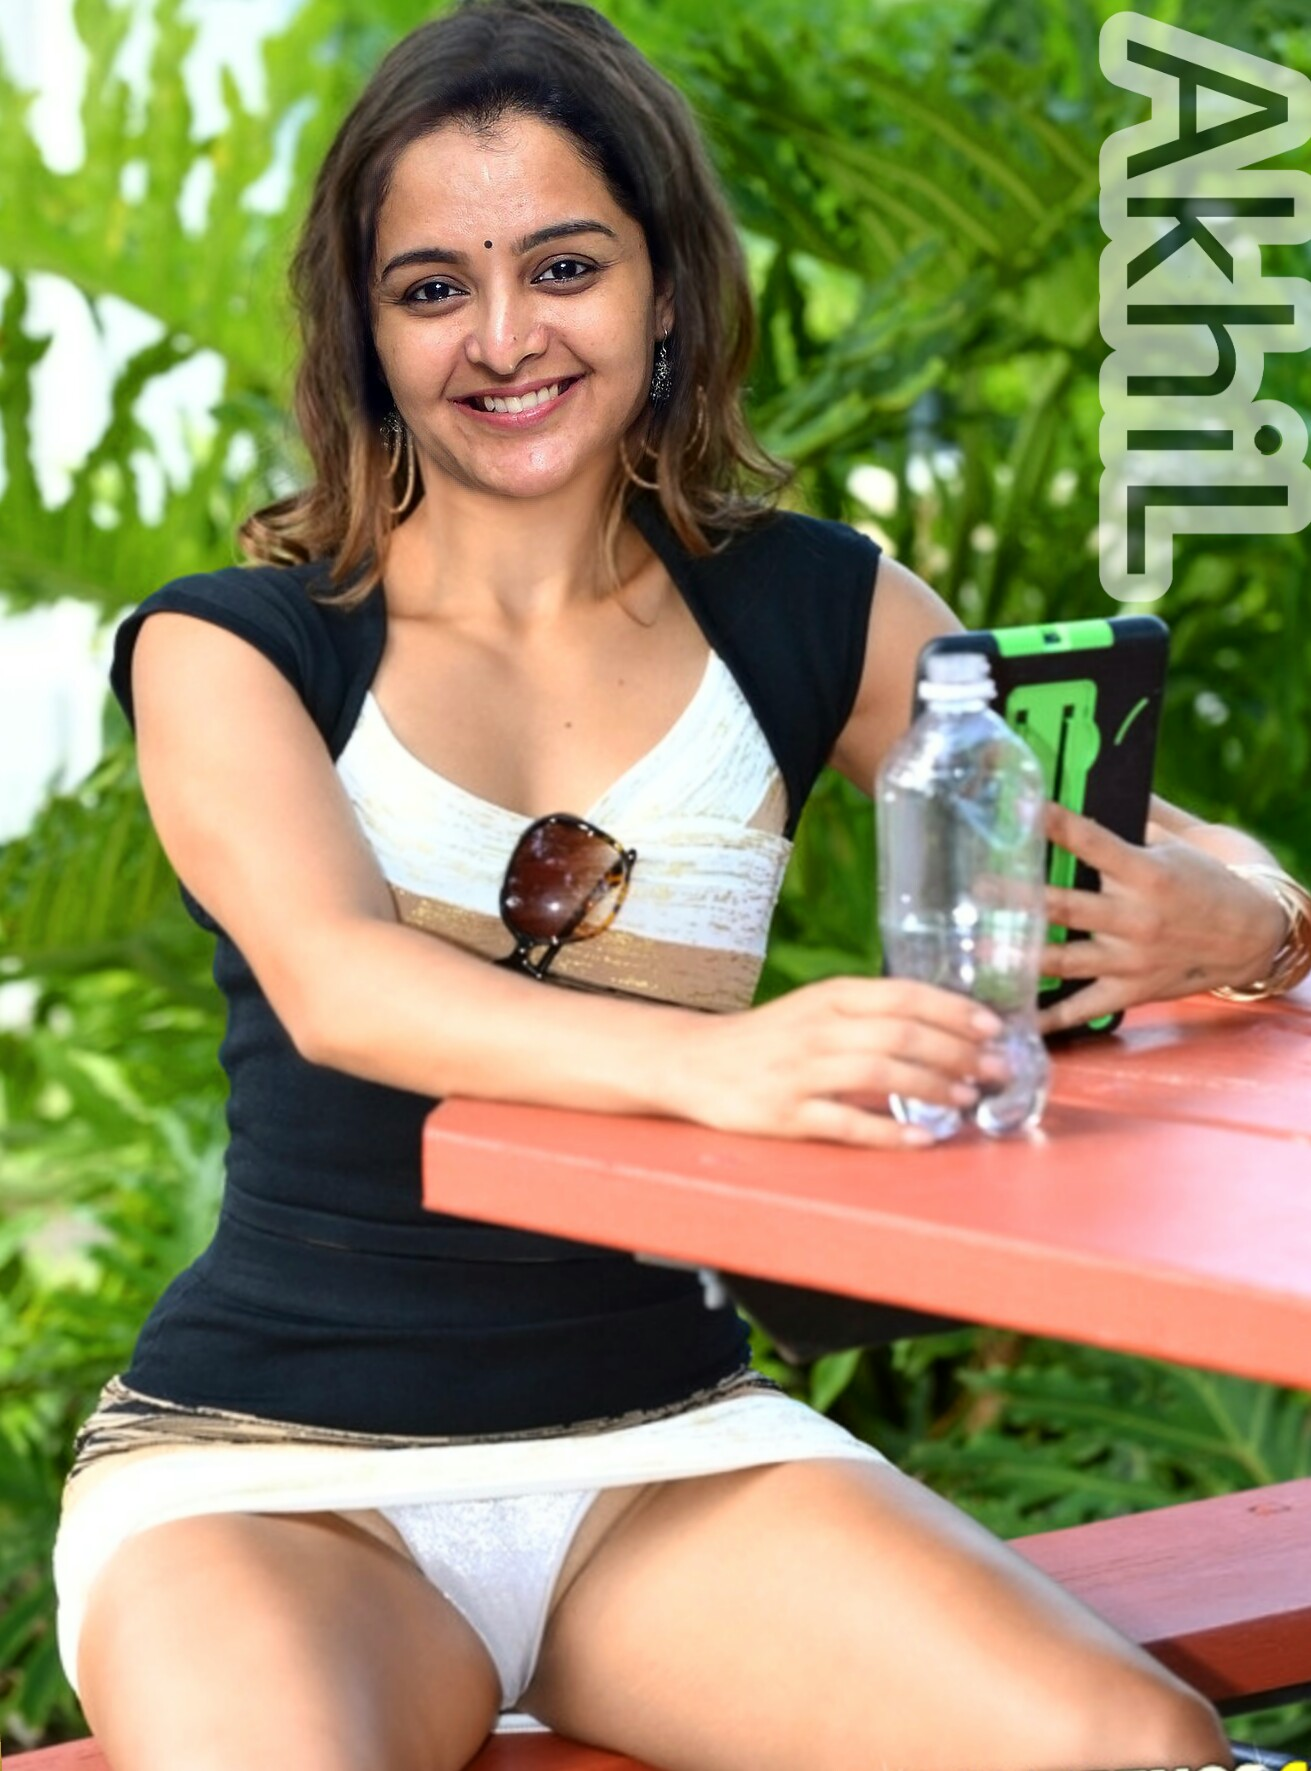 [Image: Manju-warrier-nude-hot-panty-in-skirt-sexy.jpg]